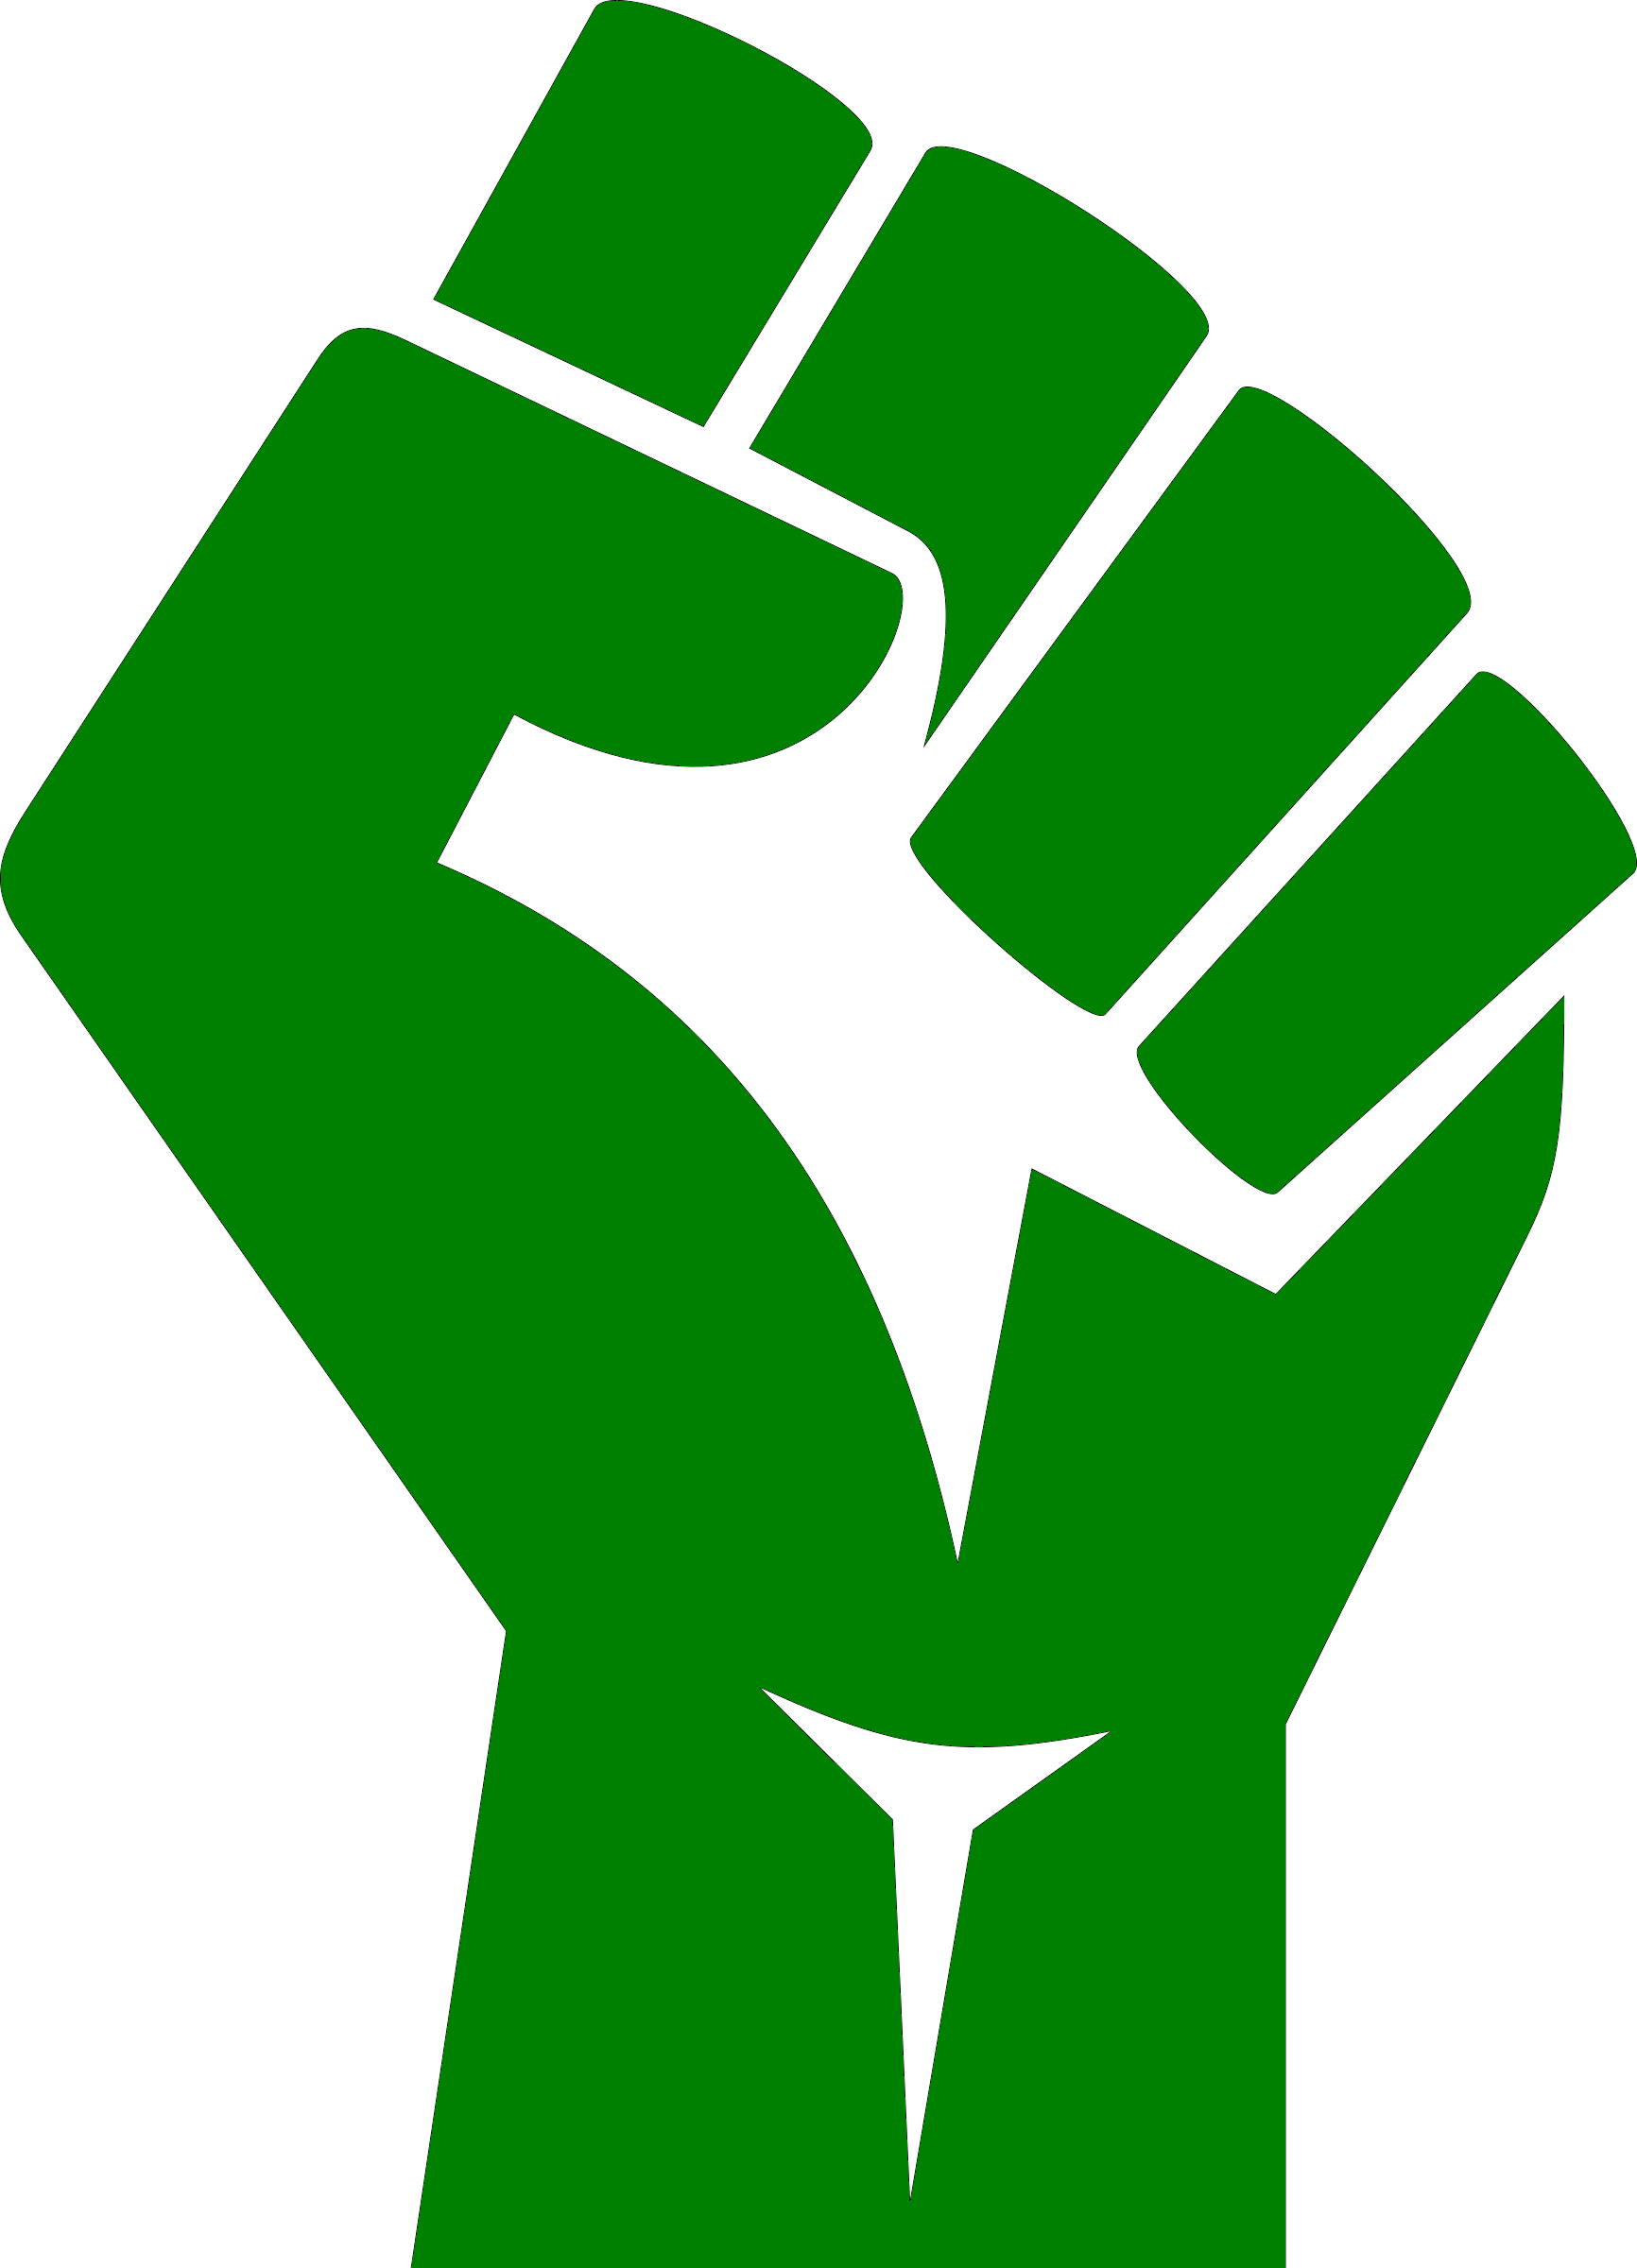 Women s march in. Fist clipart resistance